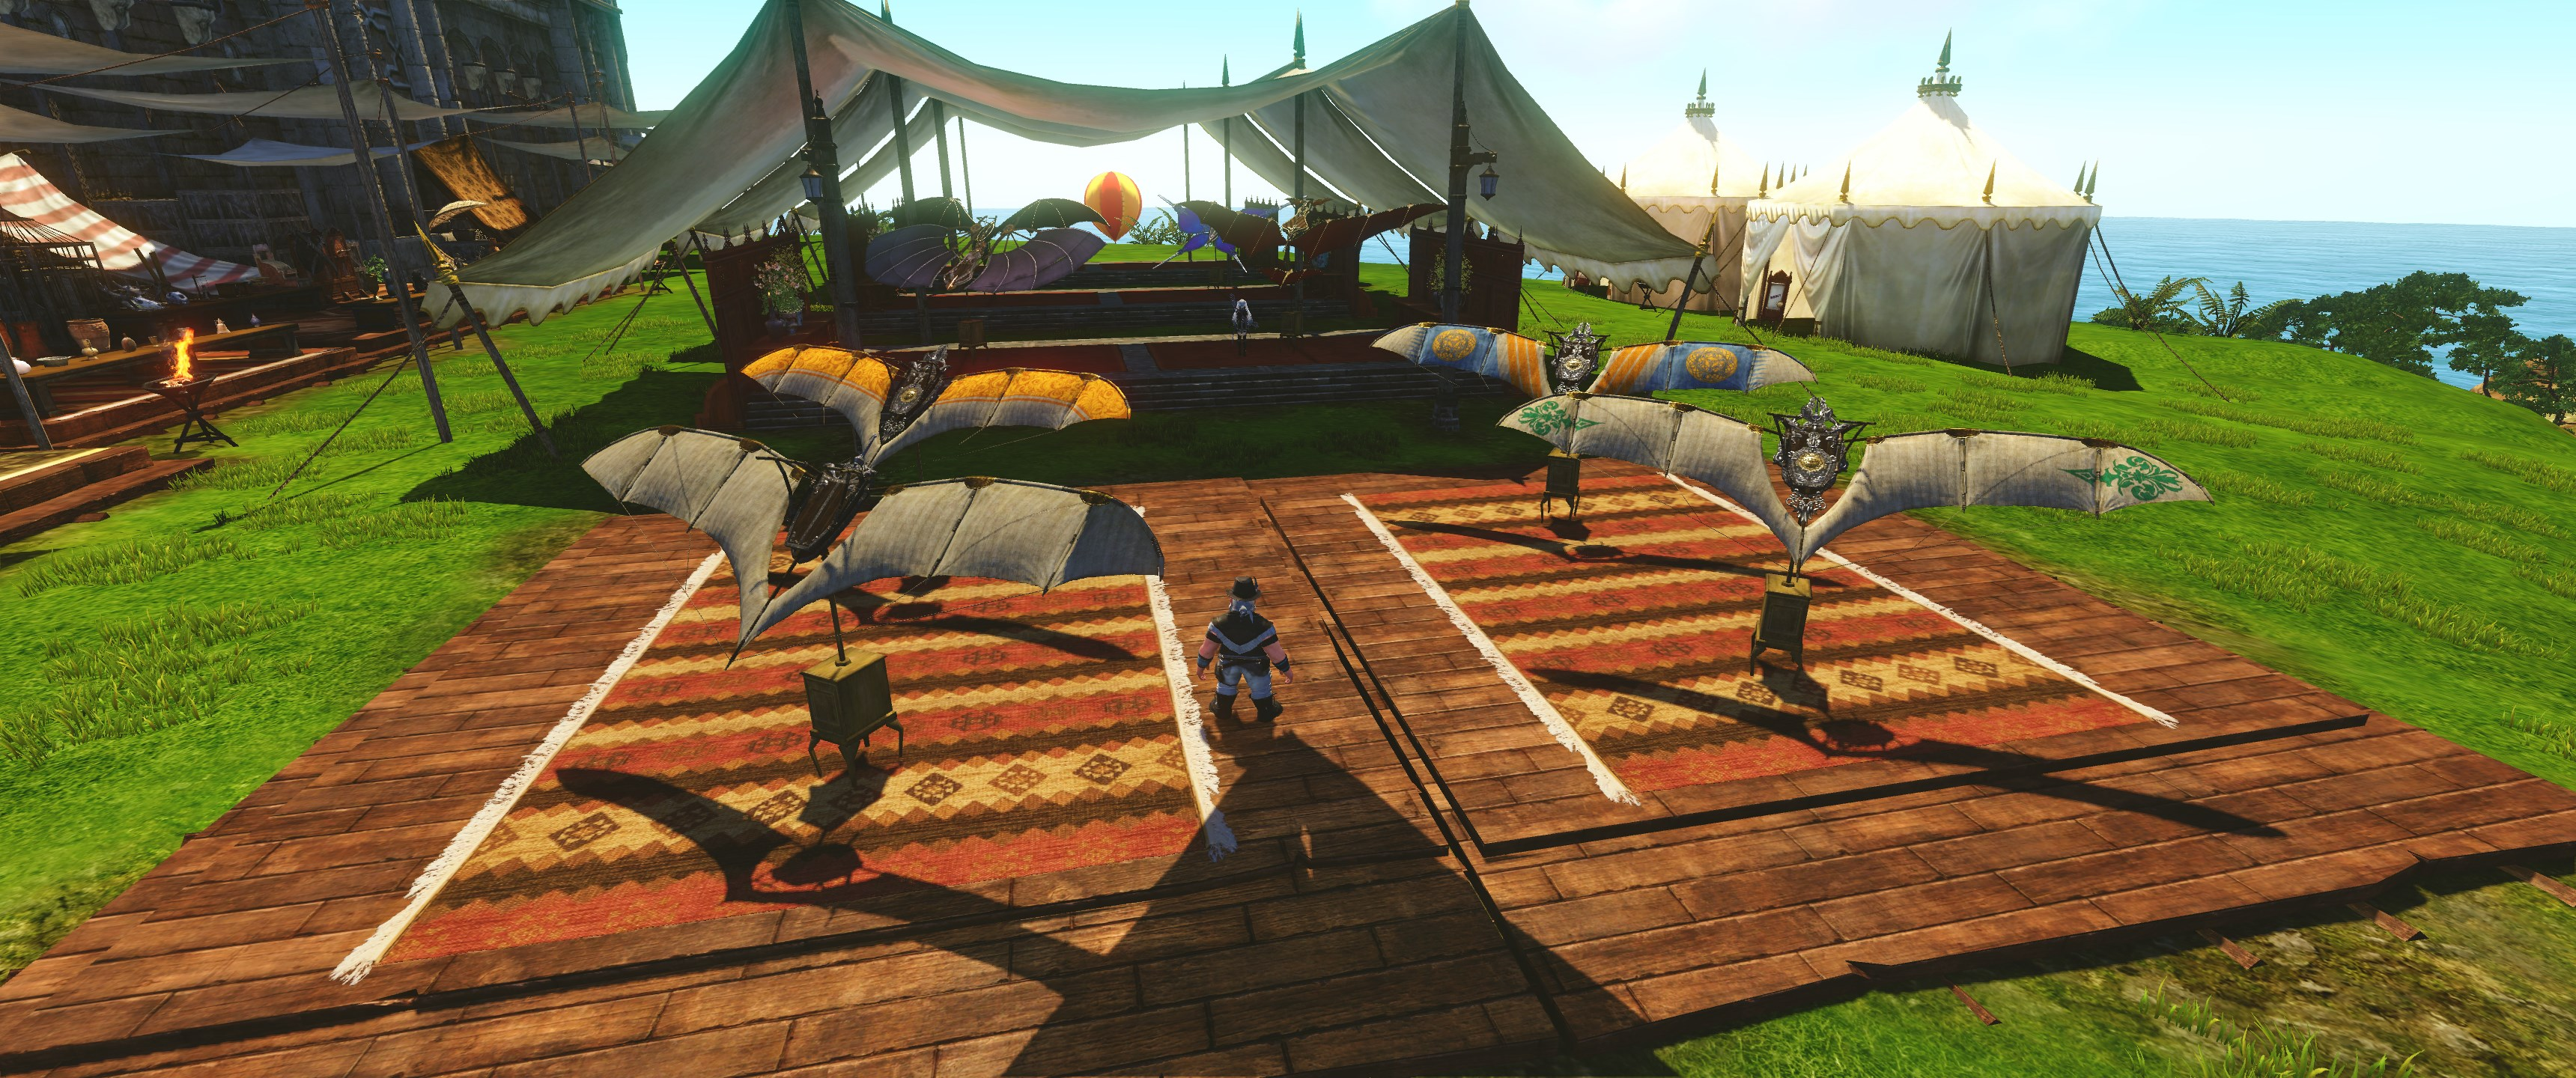 10 Beginner Tips For ArcheAge Unchained - GameSpace com